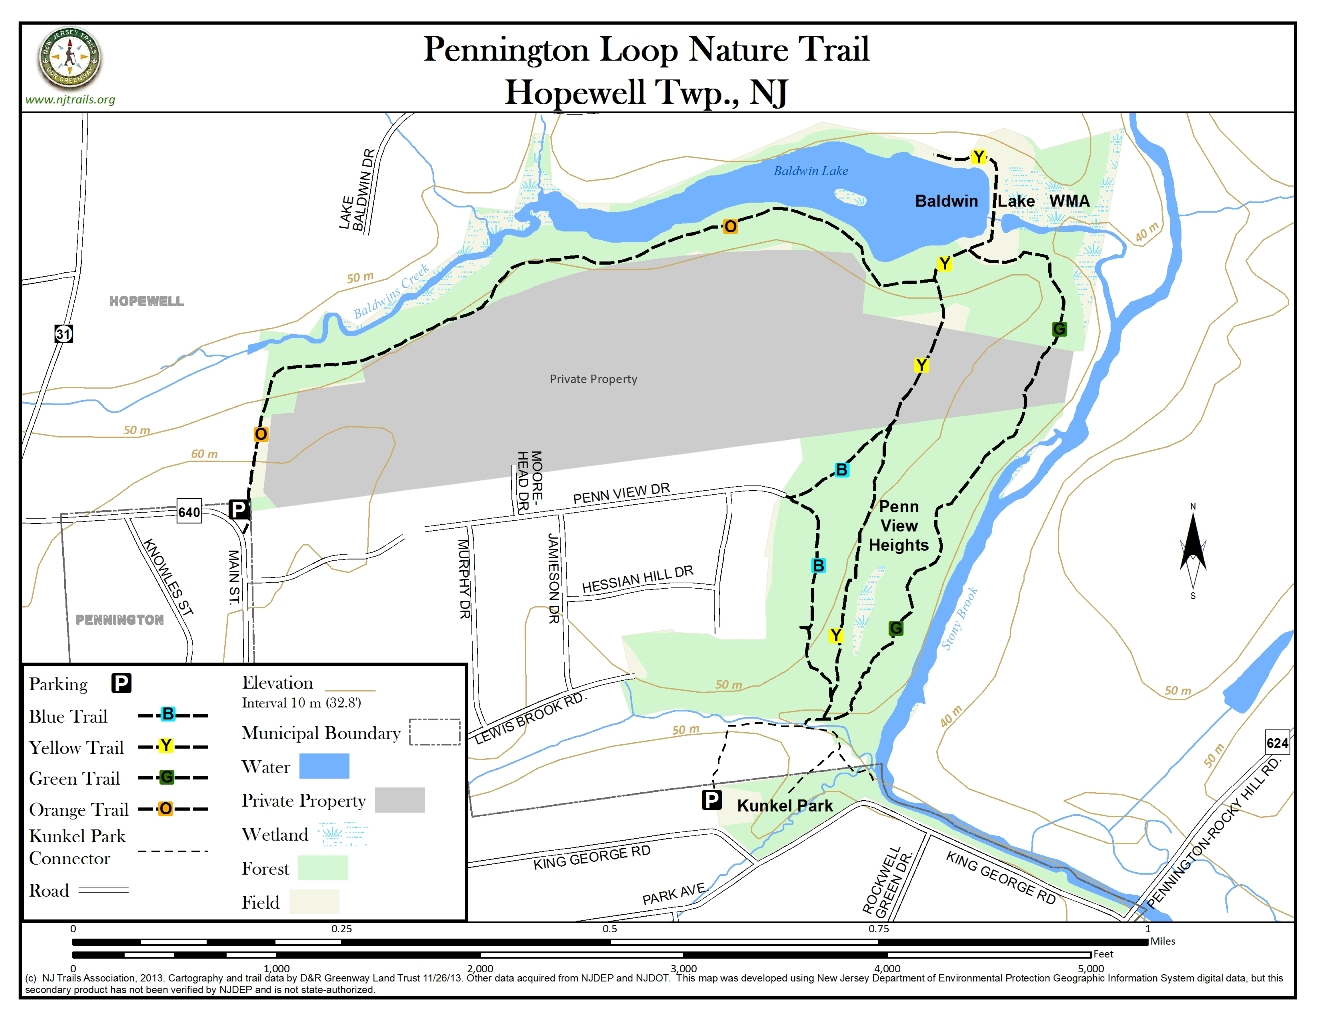 Pennington Loop Nature Trail